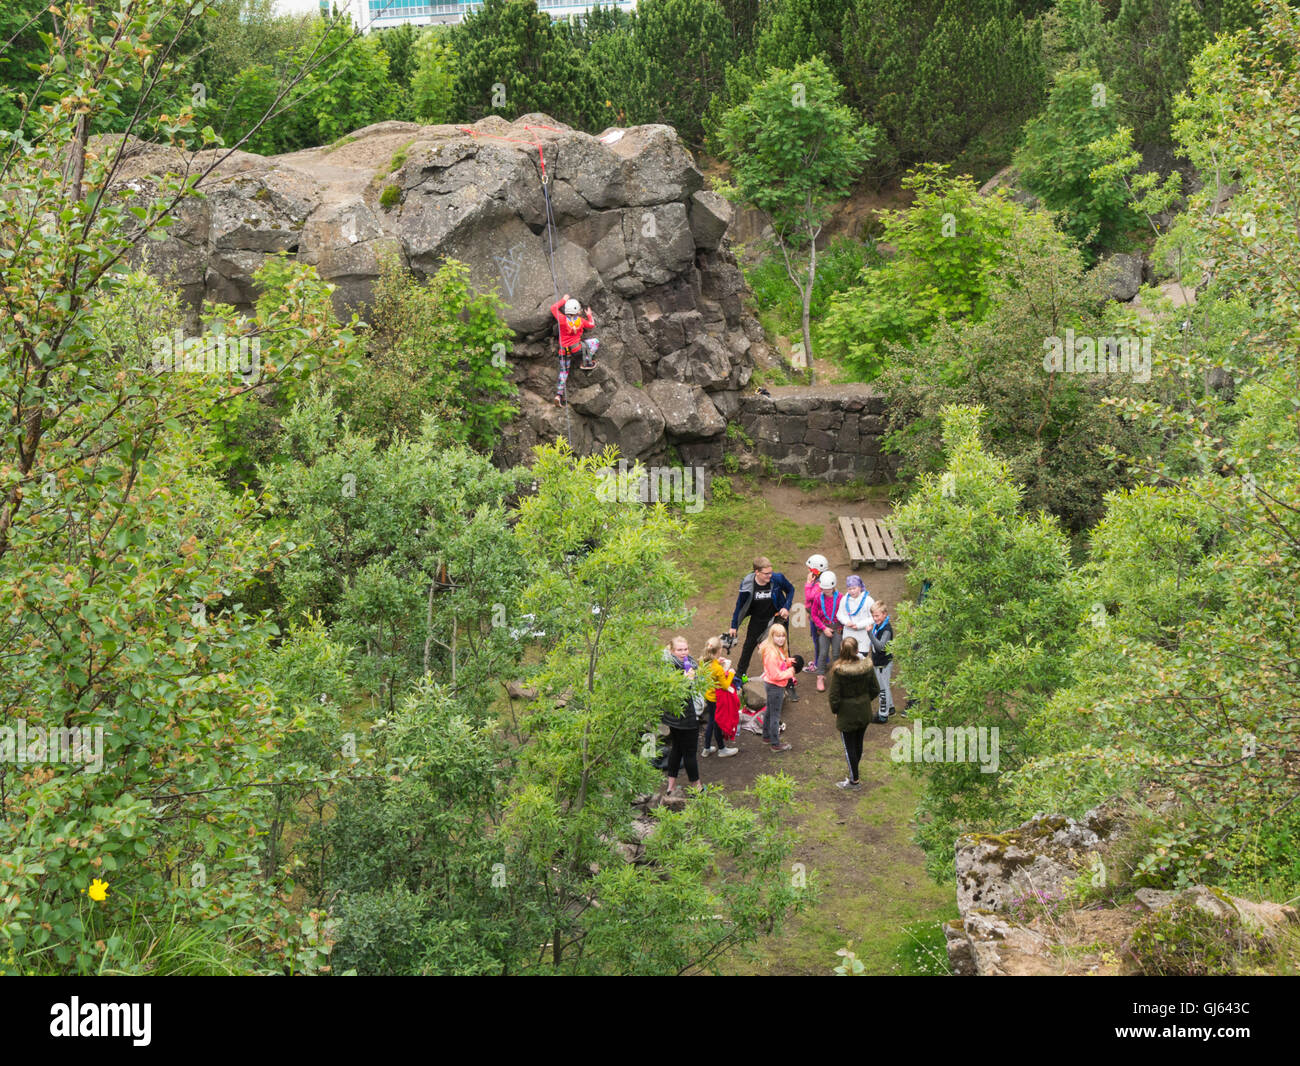 Group of schoolchildren learning to  rock climb  little girl holding rope on rockface  Iceland - Stock Image